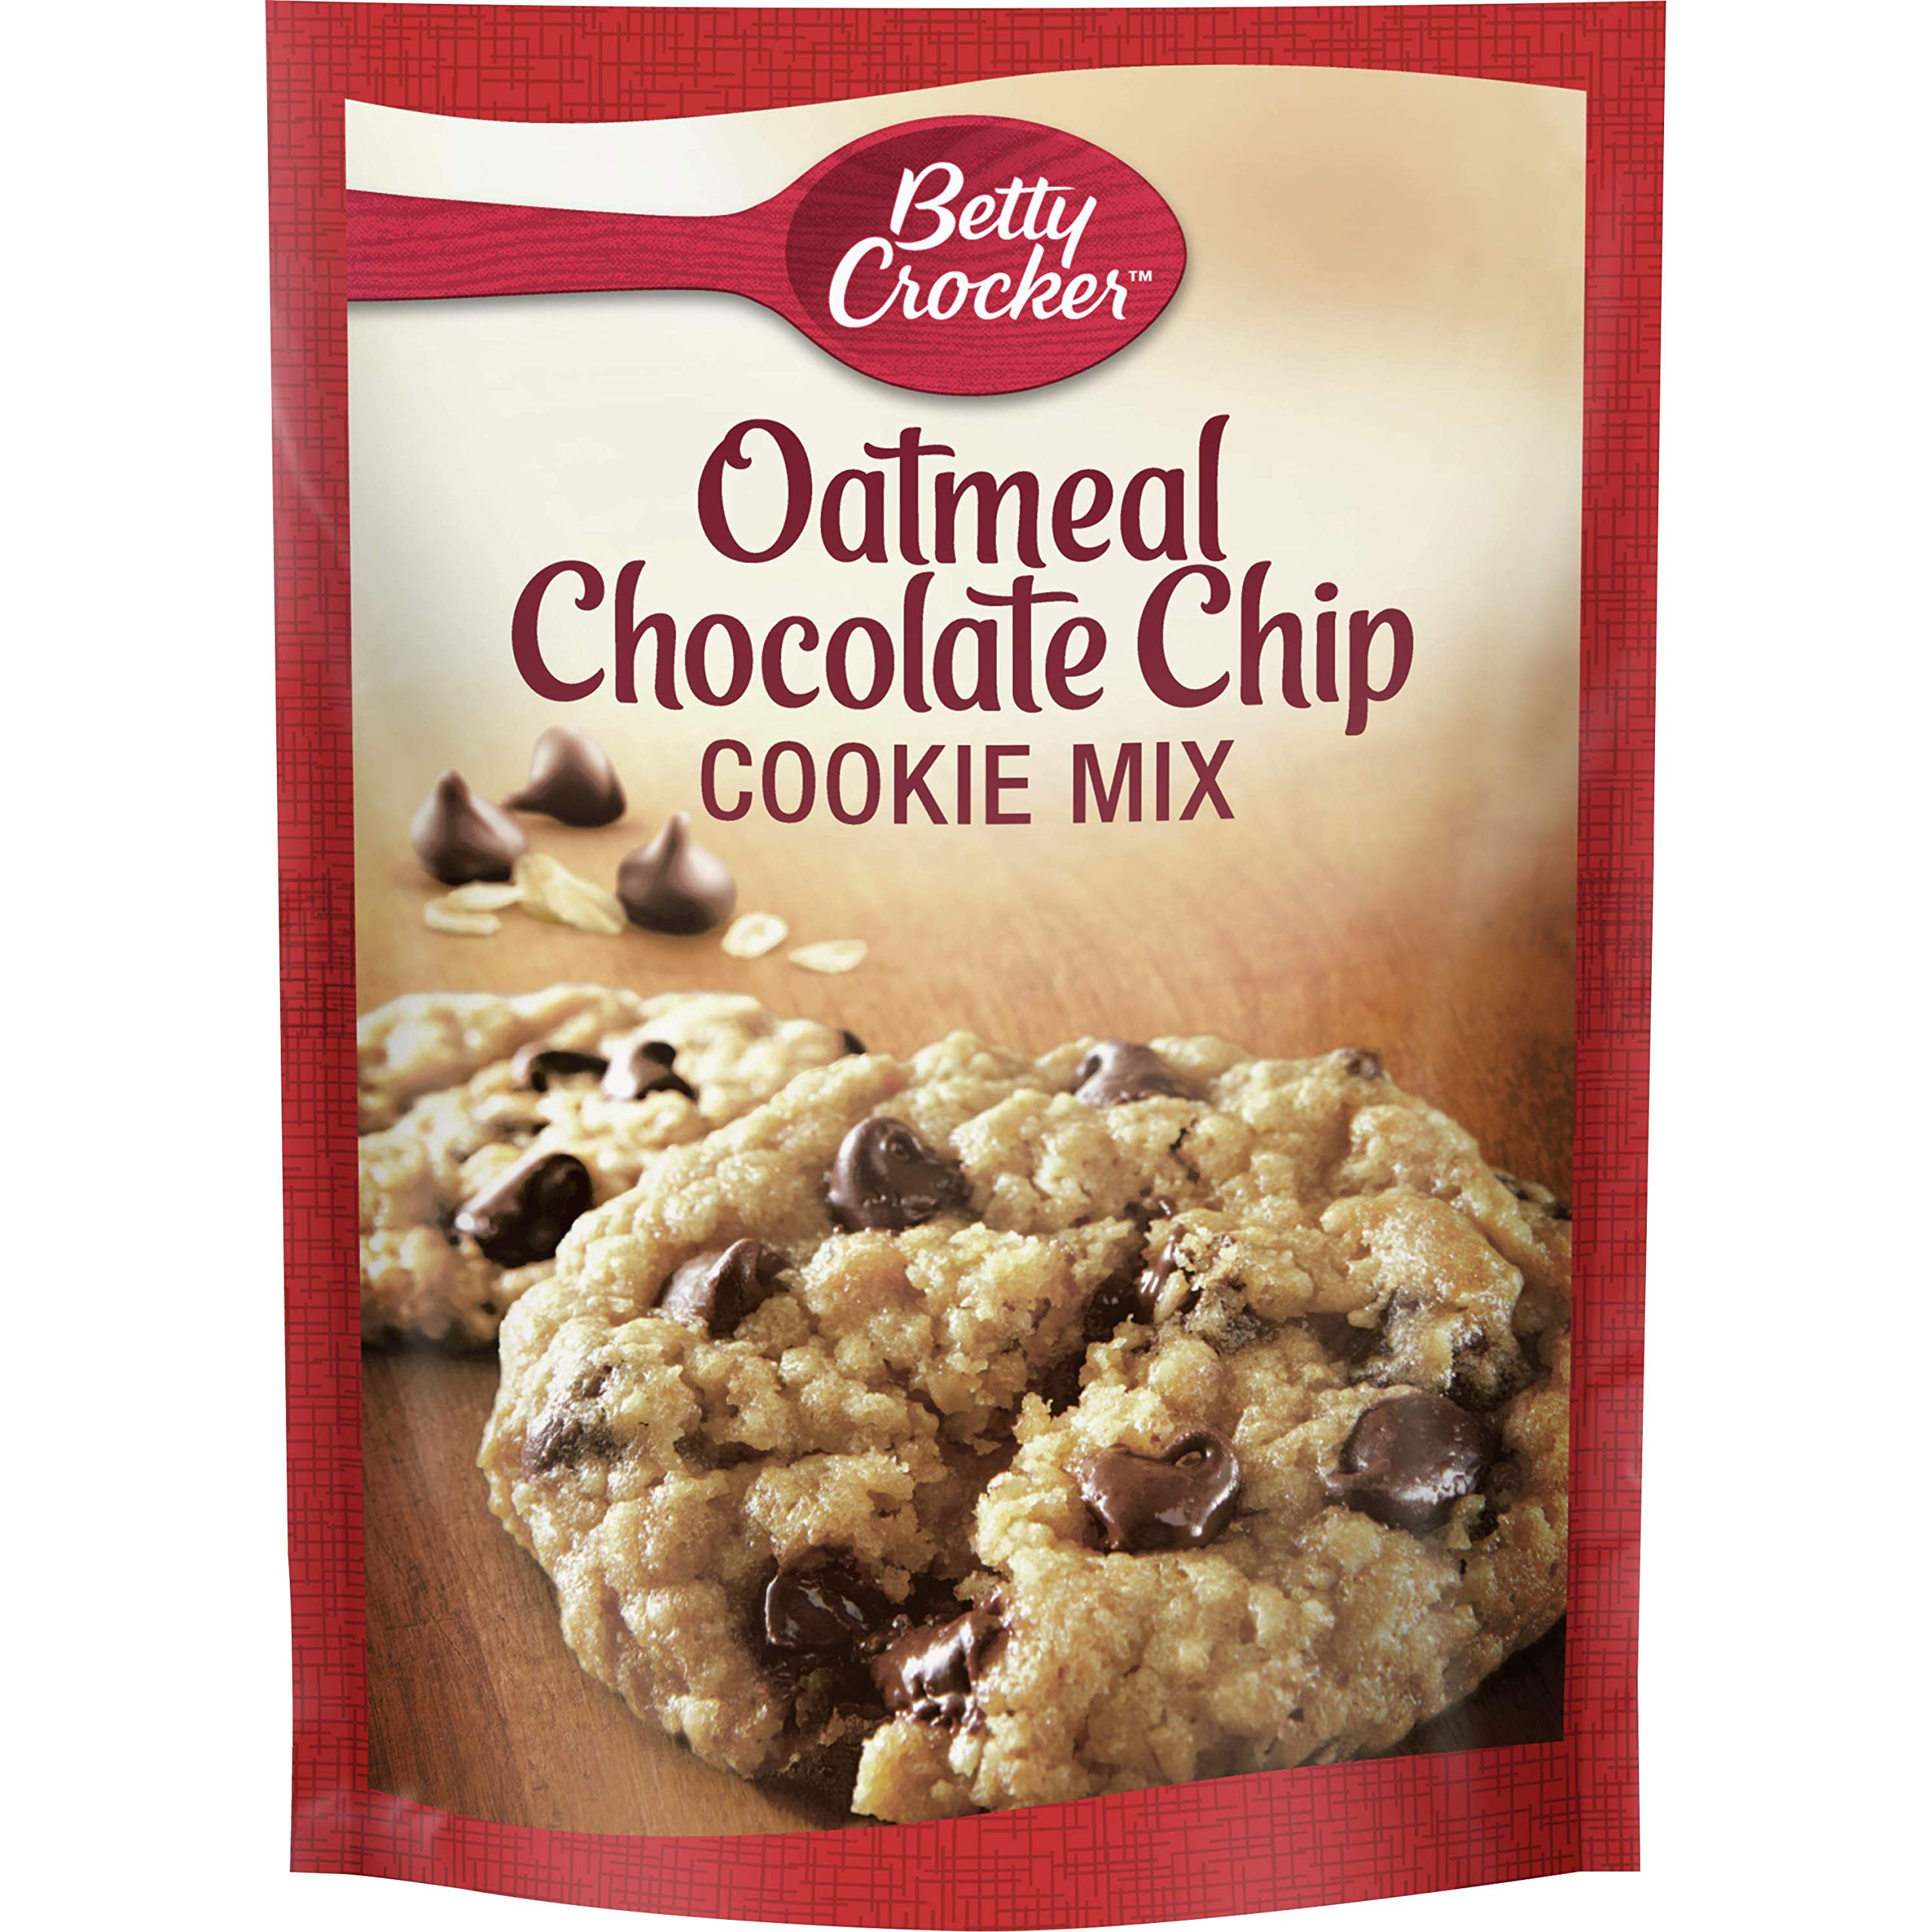 Betty Crocker Cookie Mix, Oatmeal Chocolate Chip, 17.5 oz